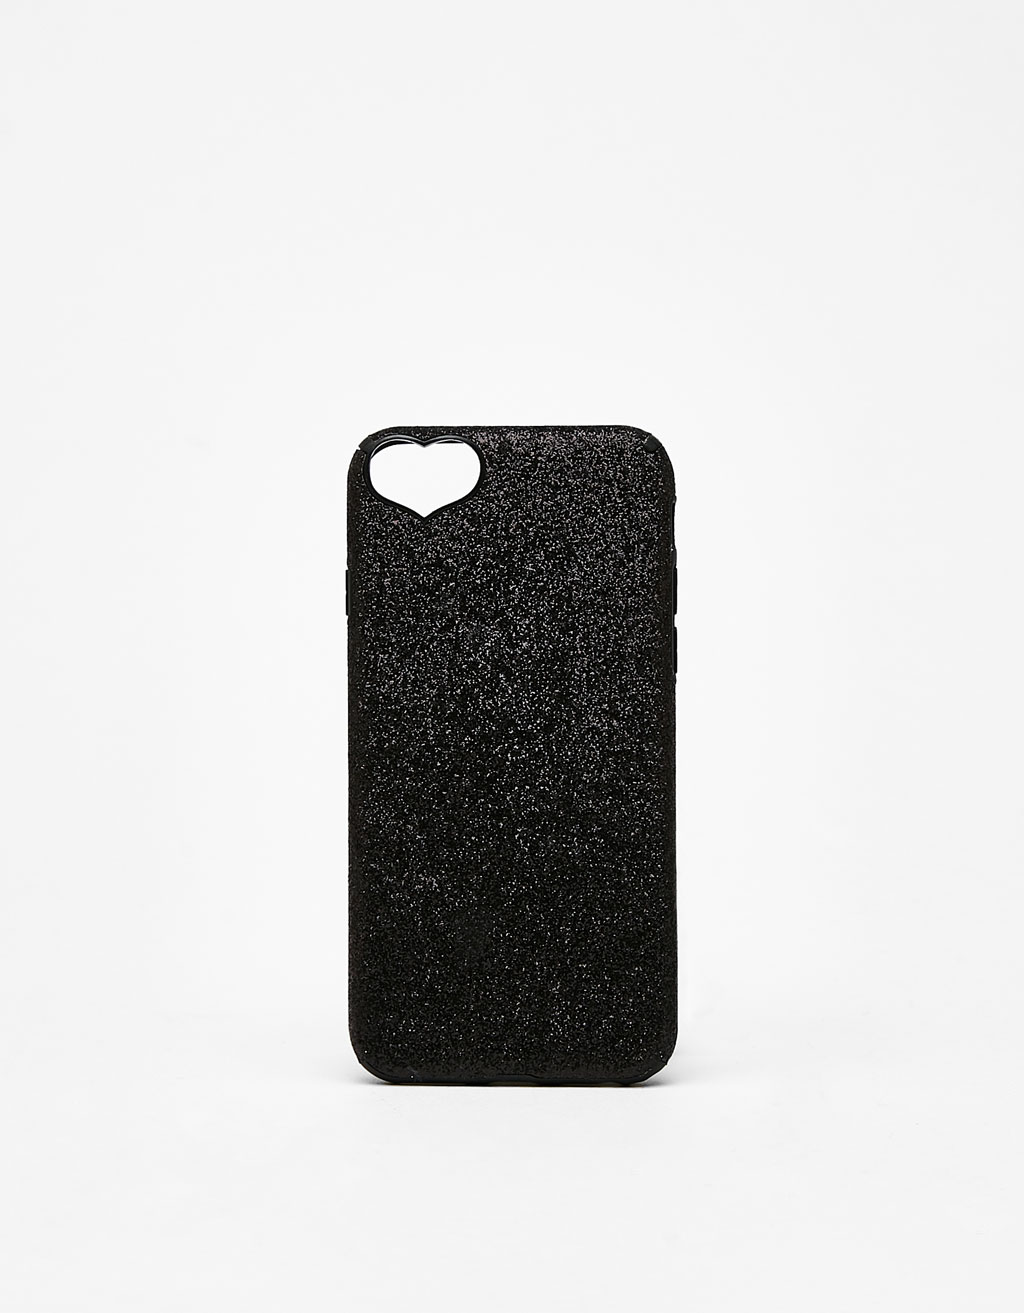 Coque à paillettes iPhone 6/6s/7